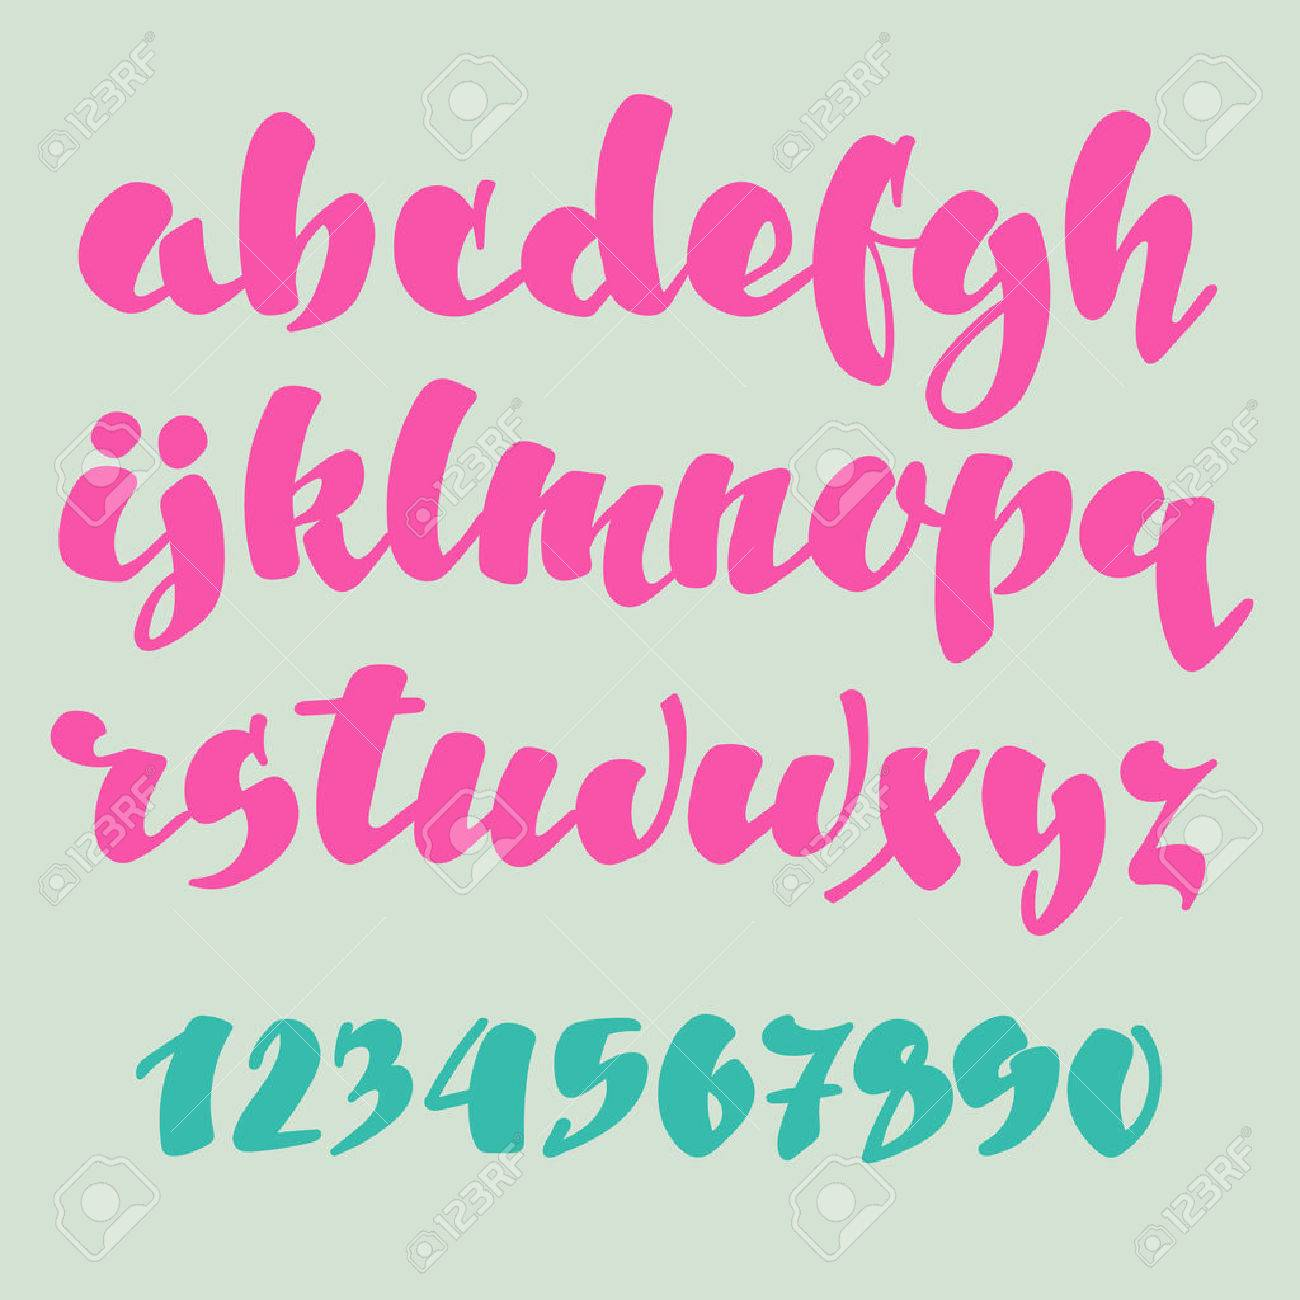 Brush pen style alphabet calligraphy low case letters and figures - 46642088